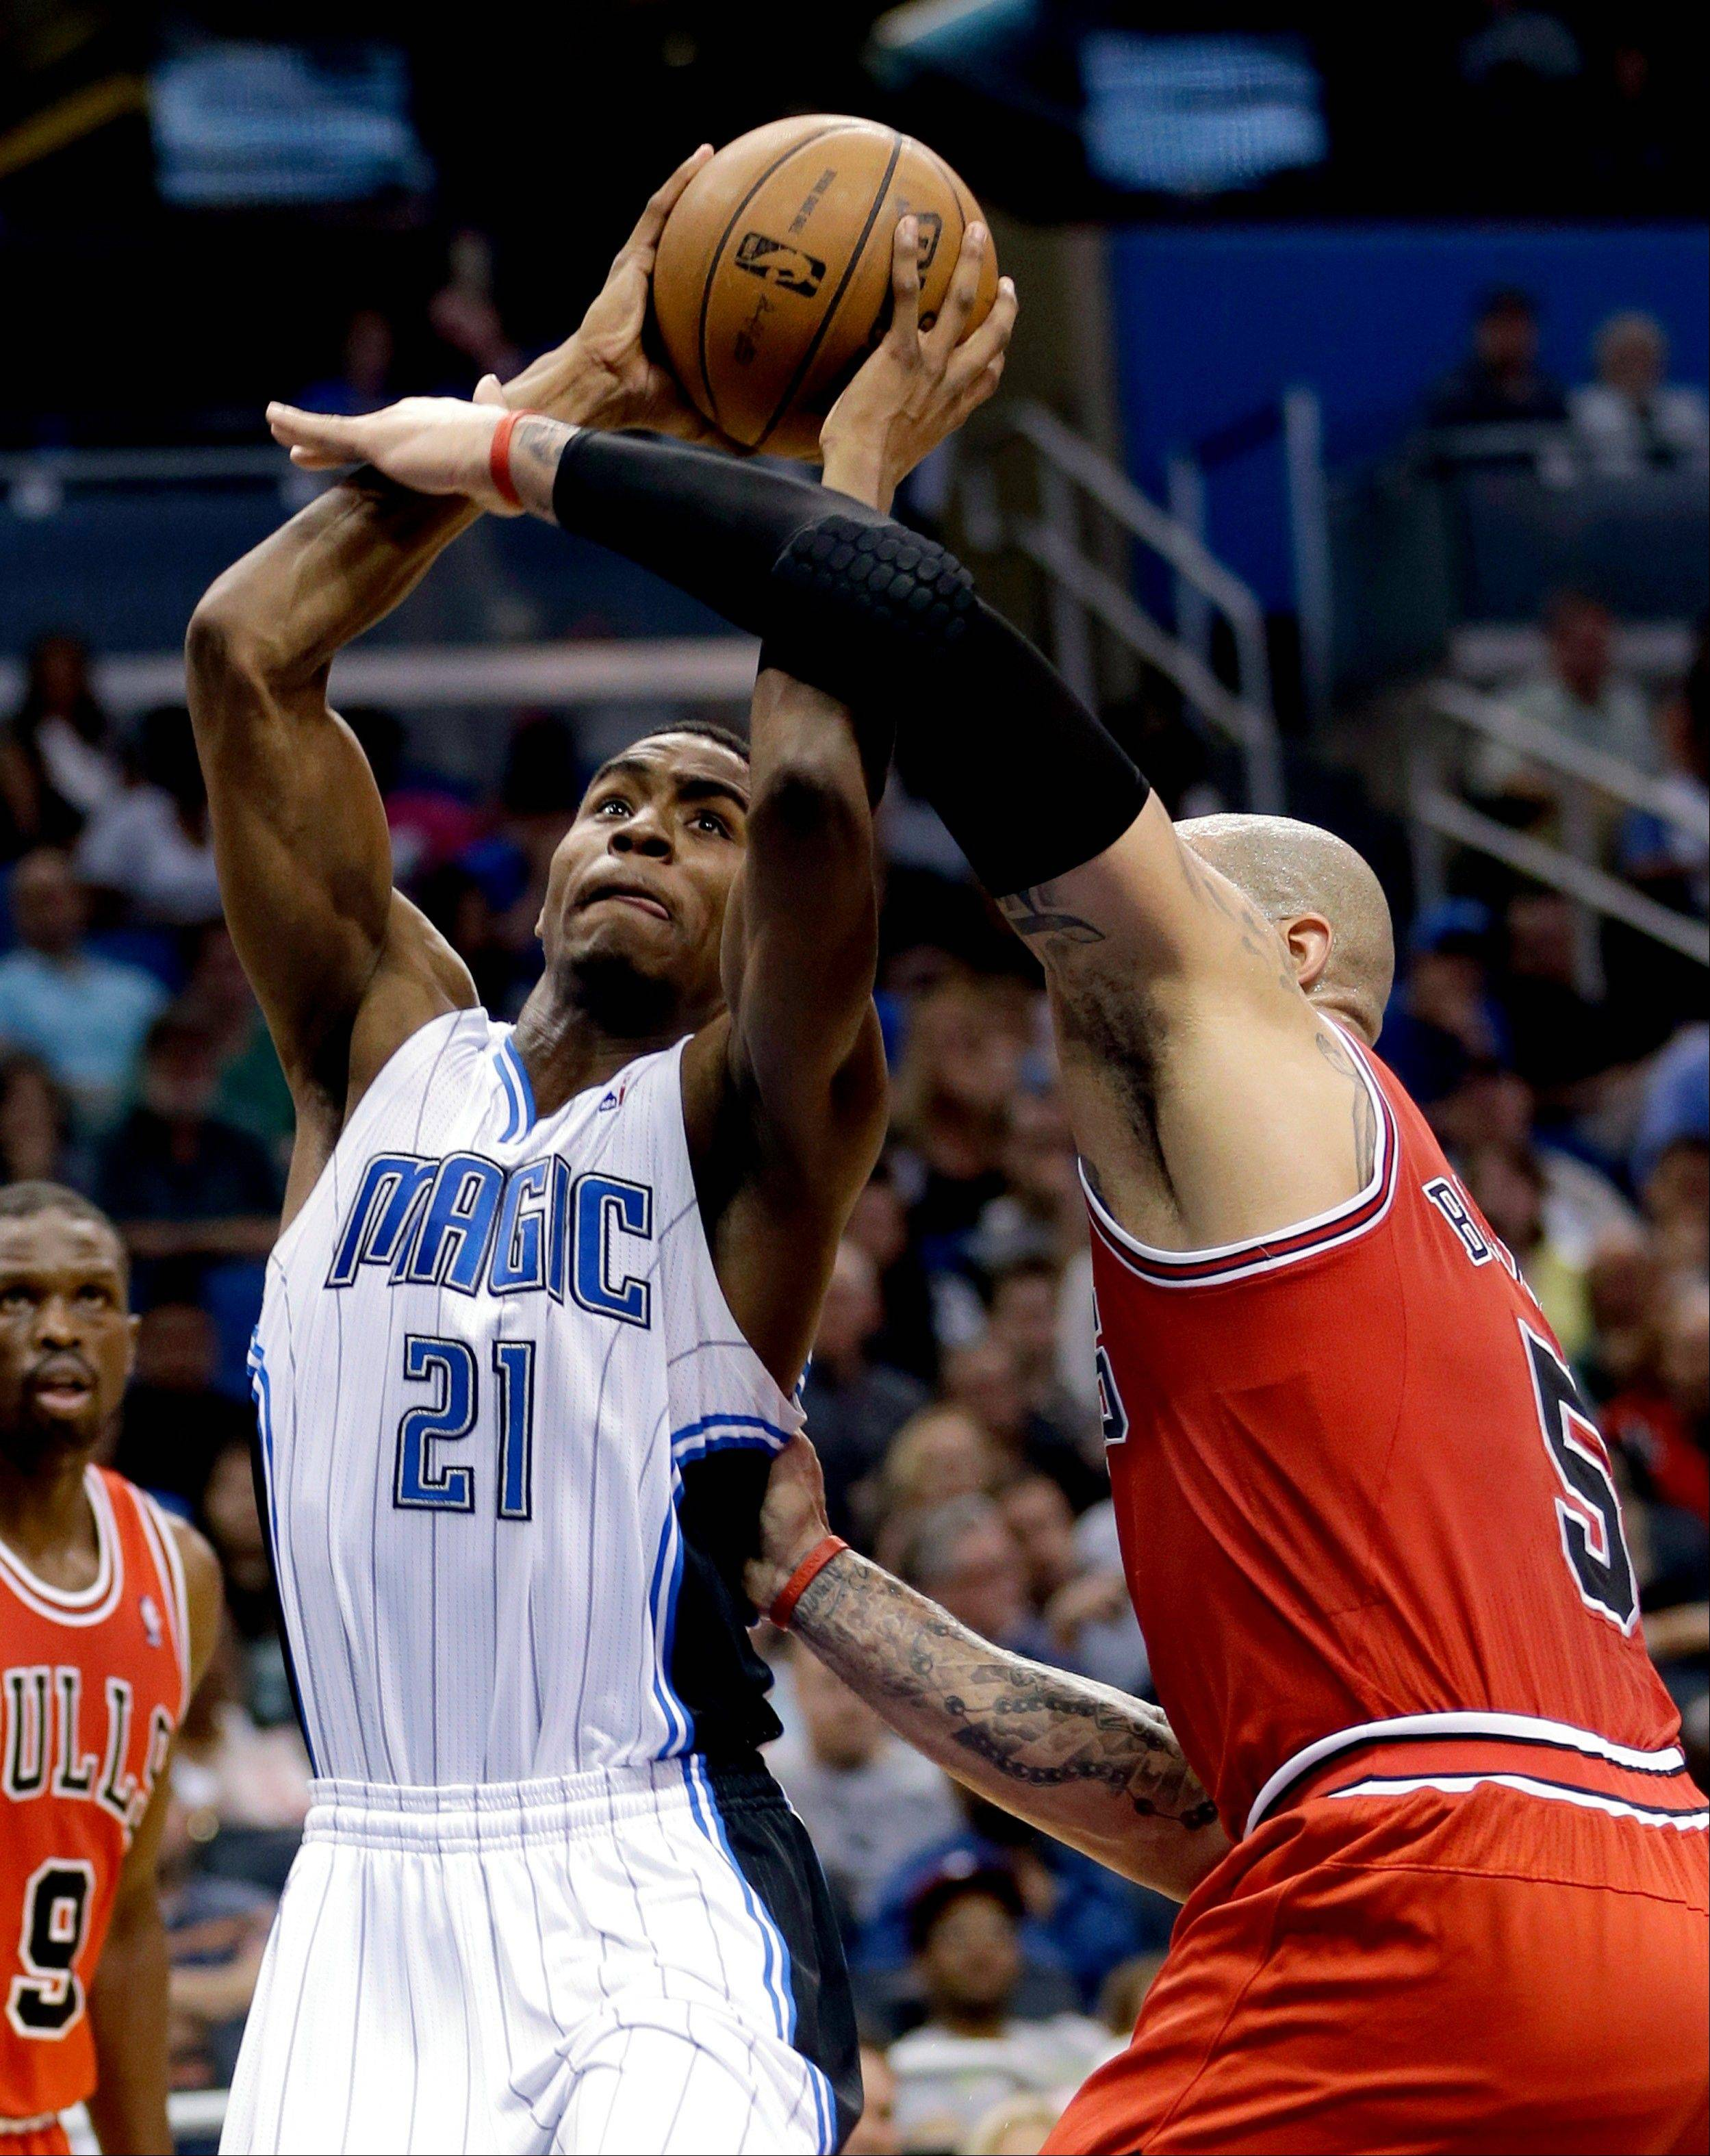 Orlando Magic's Maurice Harkless (21) shoots over the Bulls' Carlos Boozer, right, during the second half of the basketball game Monday in Orlando. The Bulls won 102-84.